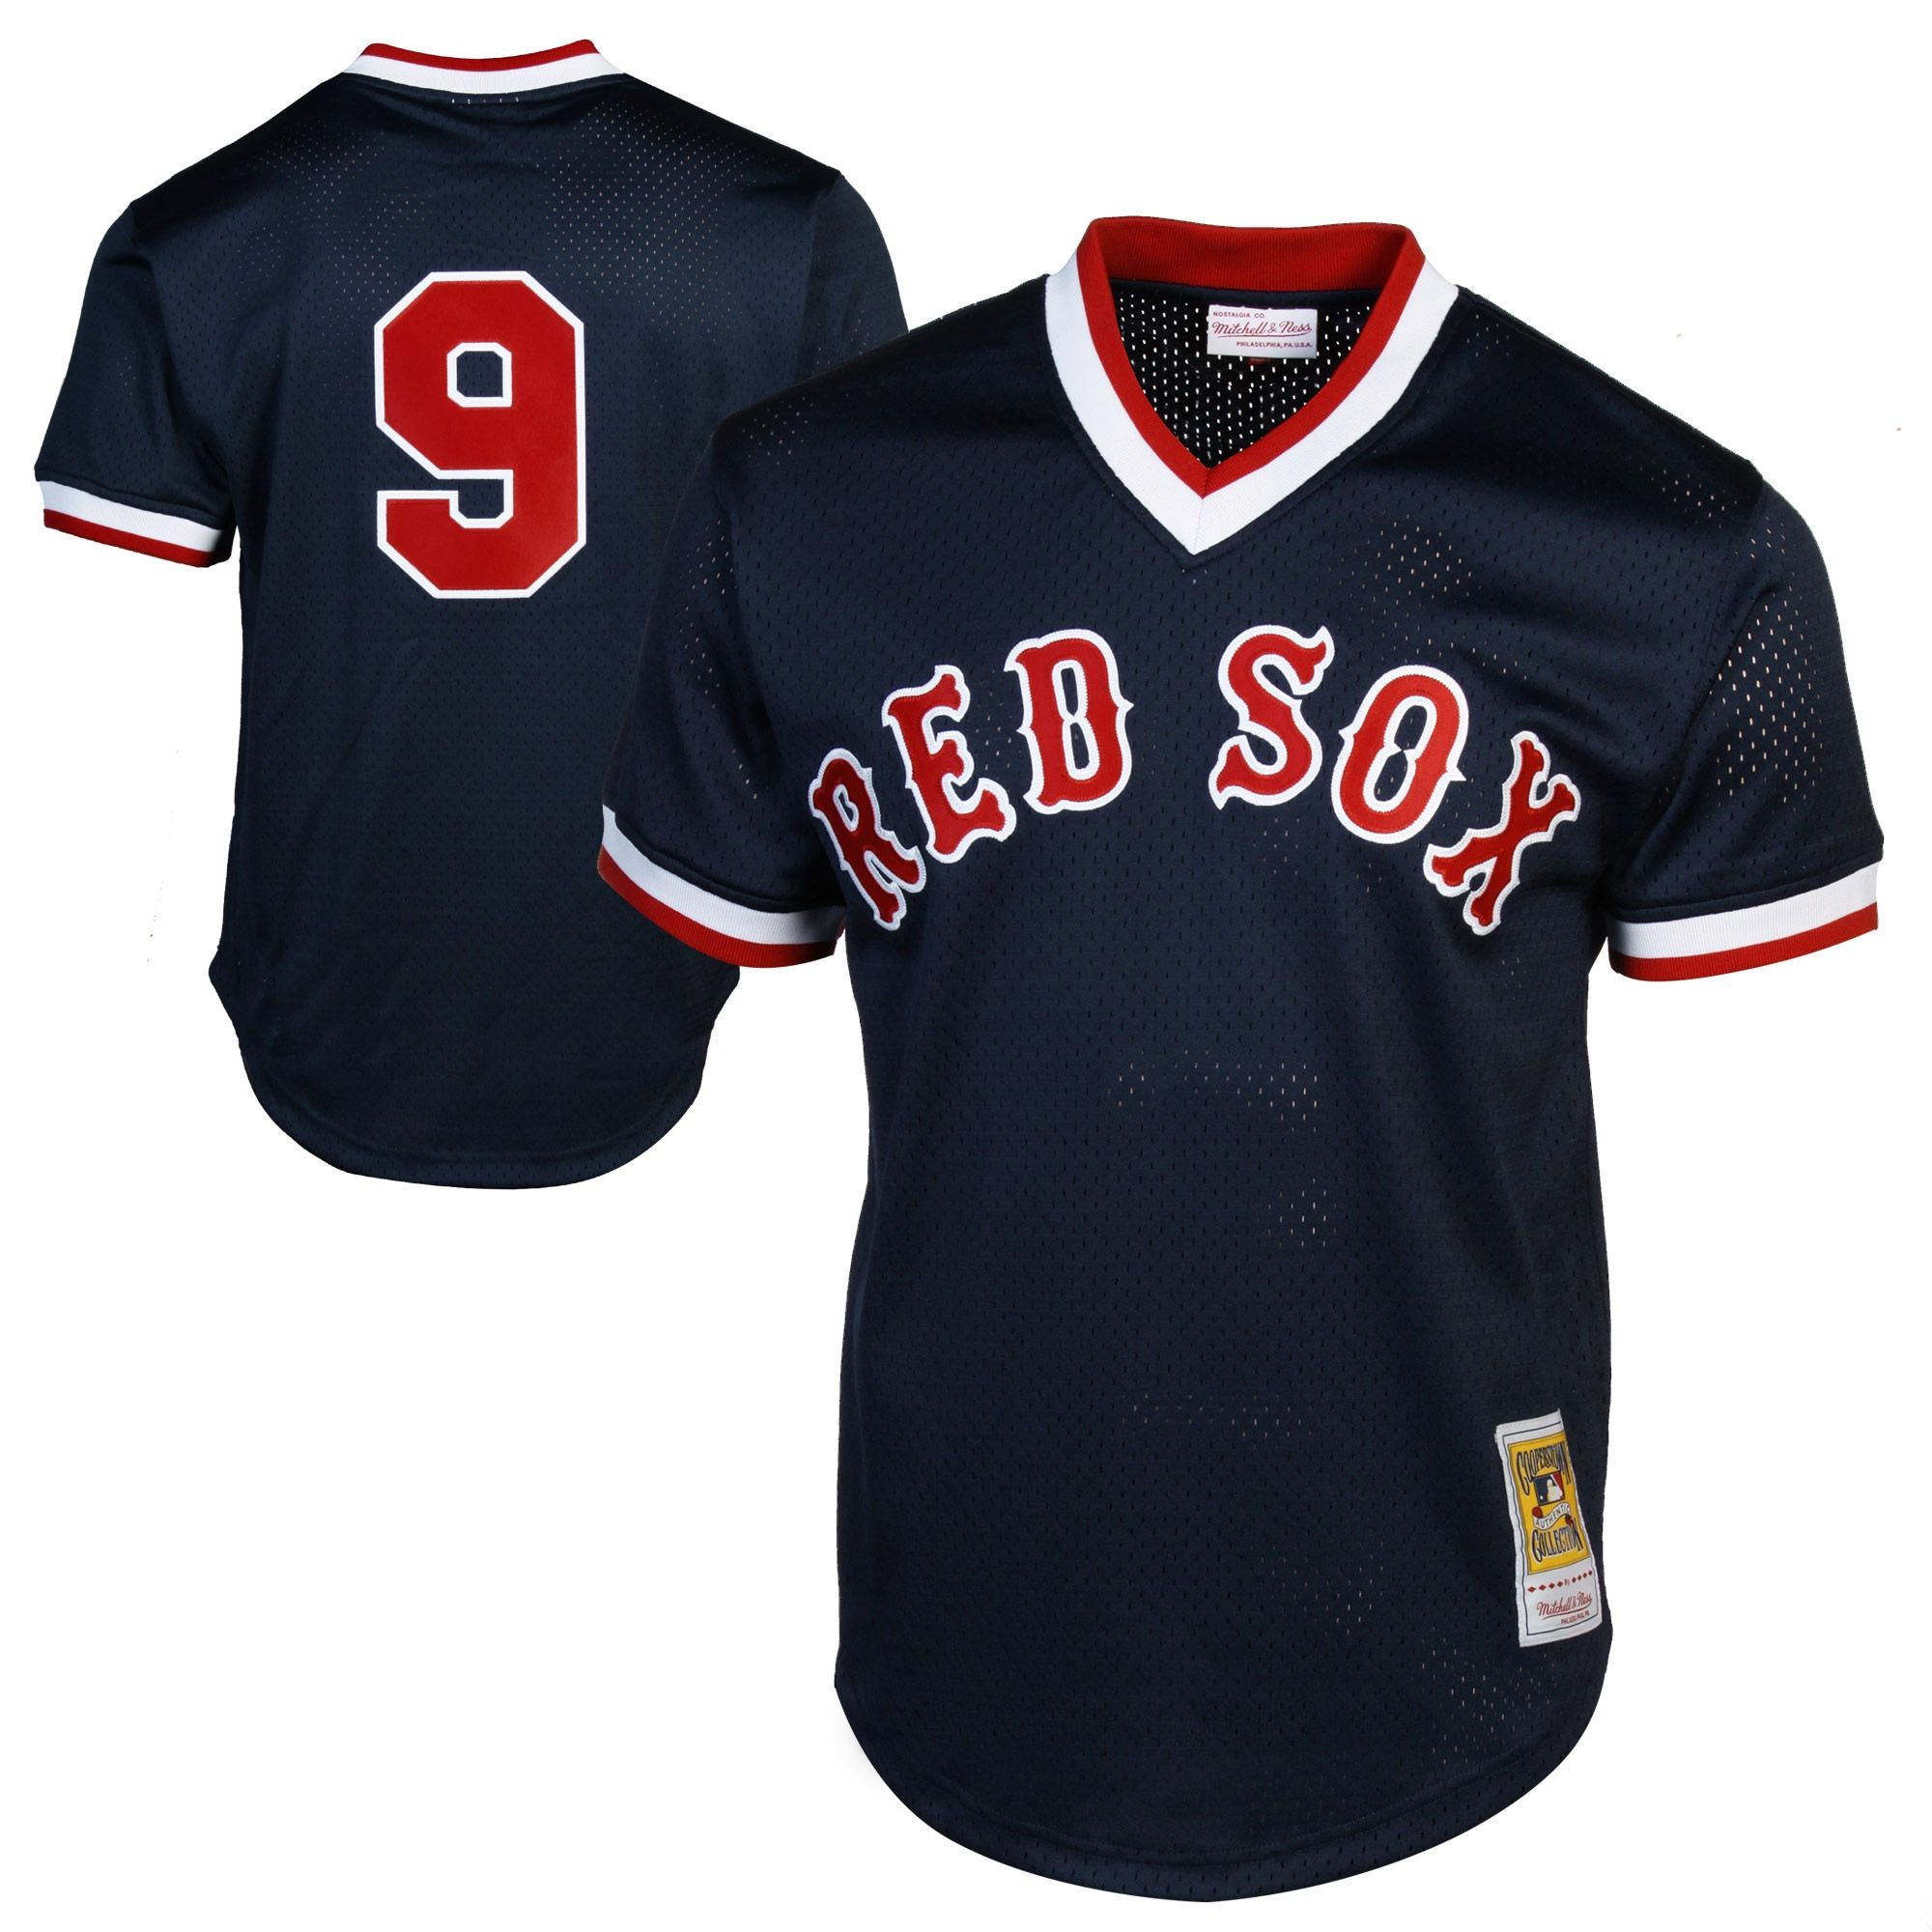 da23ecf6967 Mitchell   Ness Ted Williams Boston Red Sox 1990 Authentic Cooperstown  Collection Batting Practice Jersey - Navy Blue